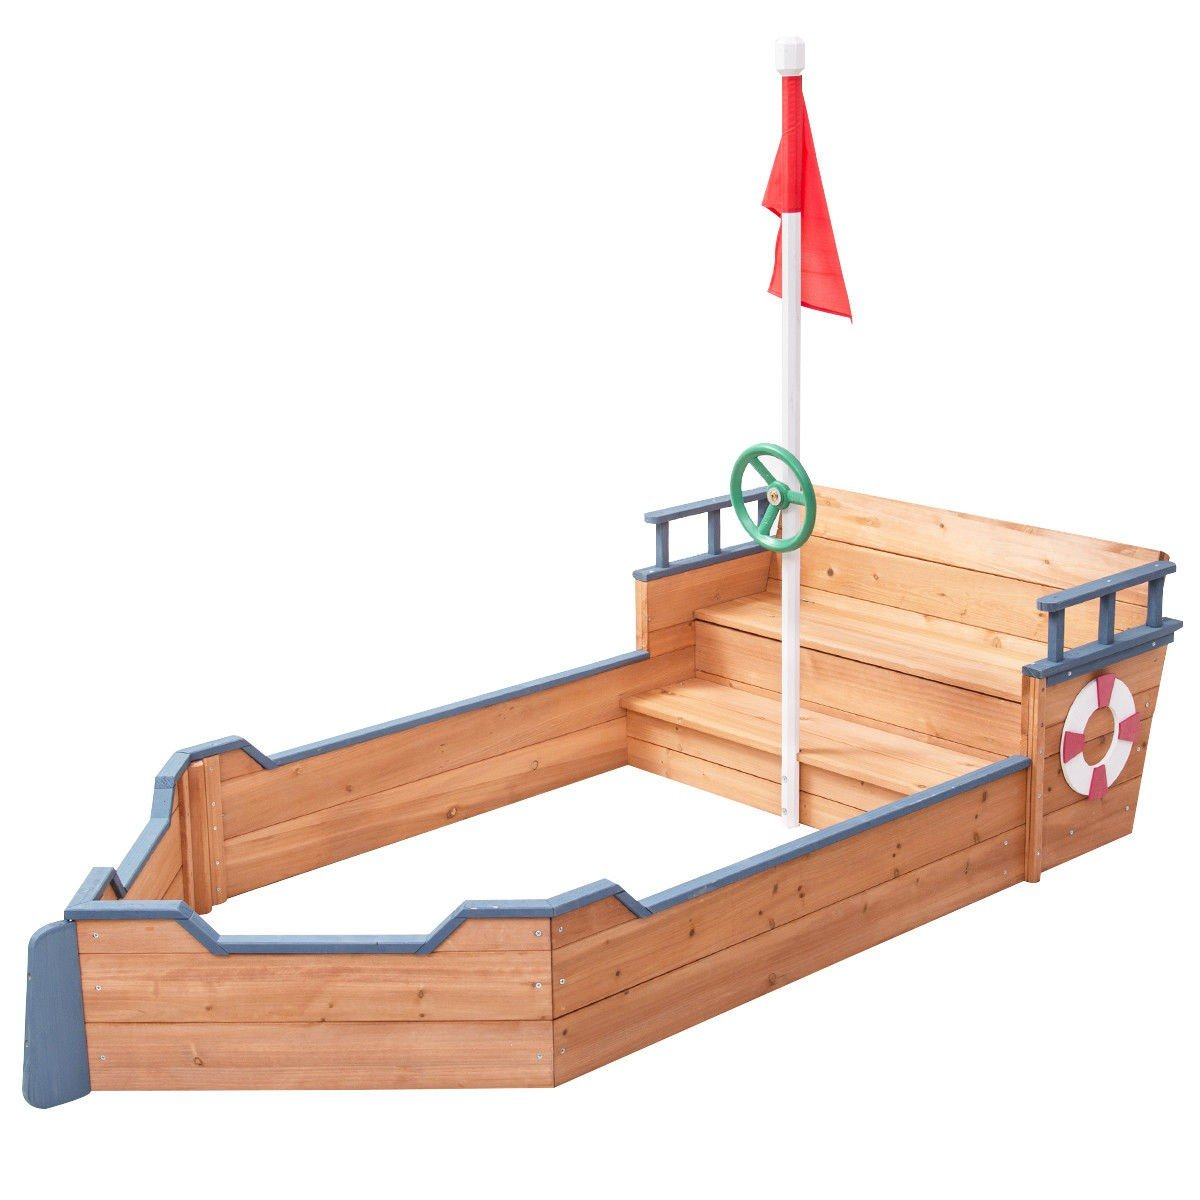 EnjoyShop Kids Pirate Wooden Boat Sandbox with Bench and Flag Fully Adjustable Sand Depth